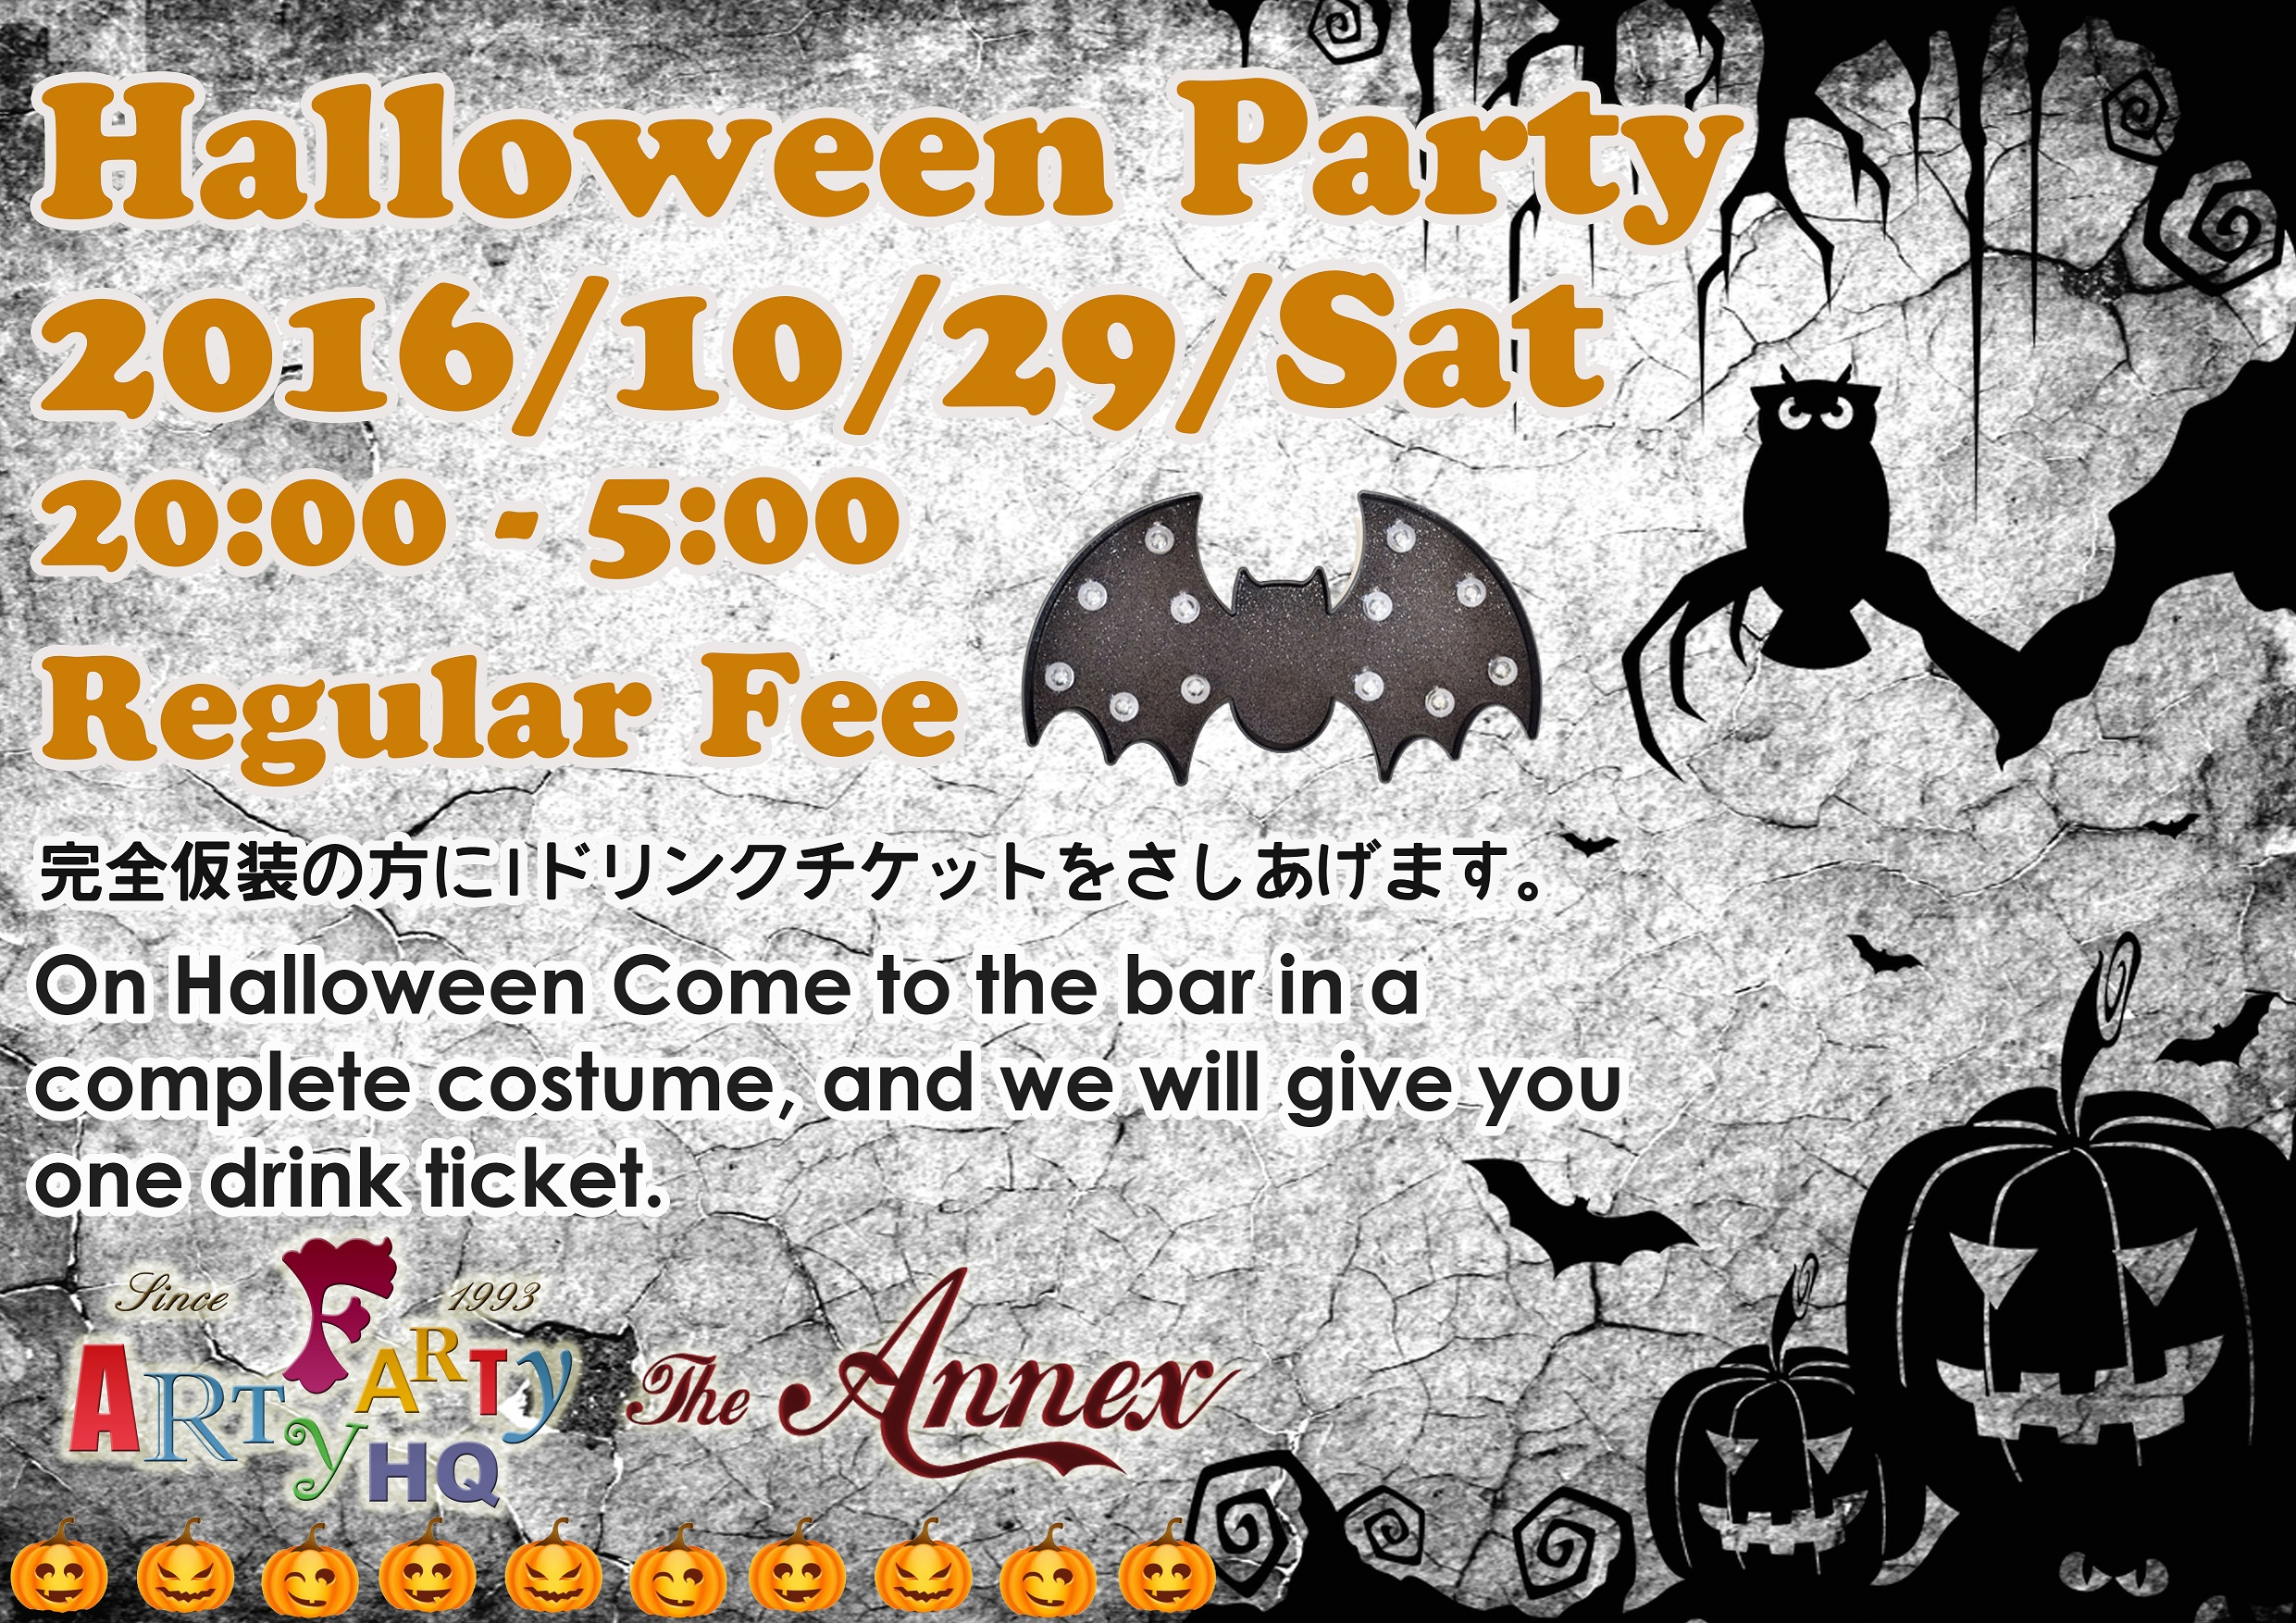 ARTY & ANNEX  Halloween Party ! !